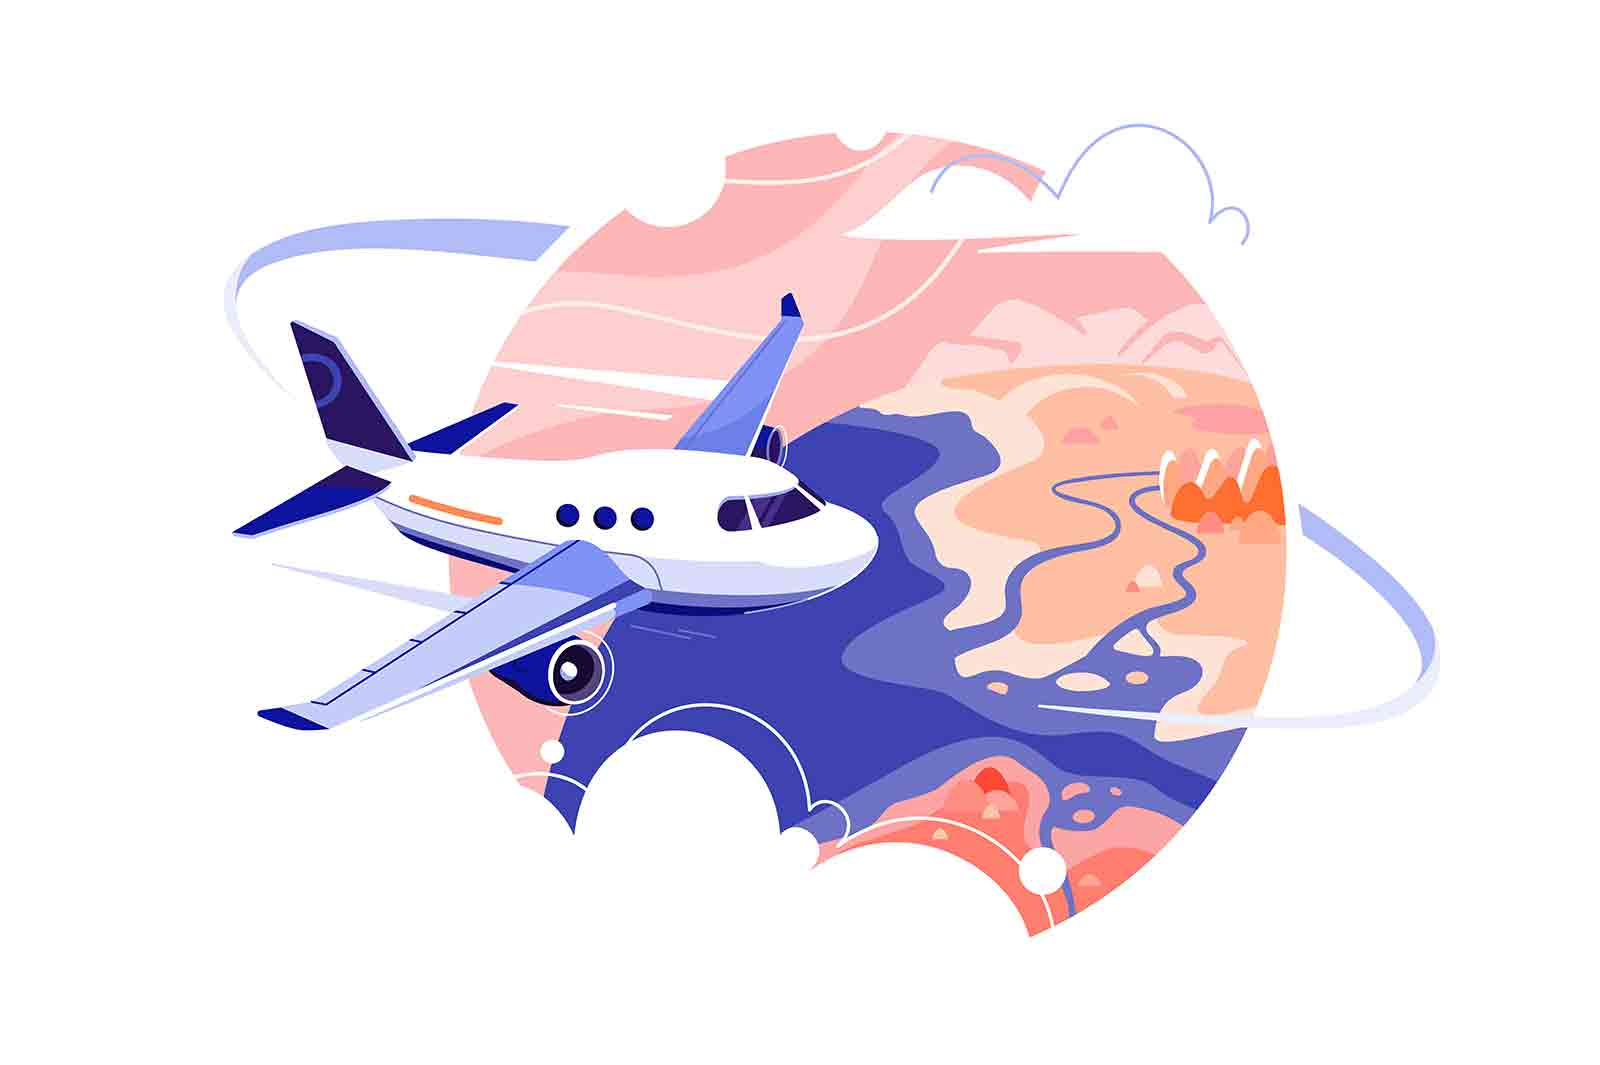 Airplane flying through clouds in sky vector illustration. Go on vacation flat style. Travel around world, explore new places concept